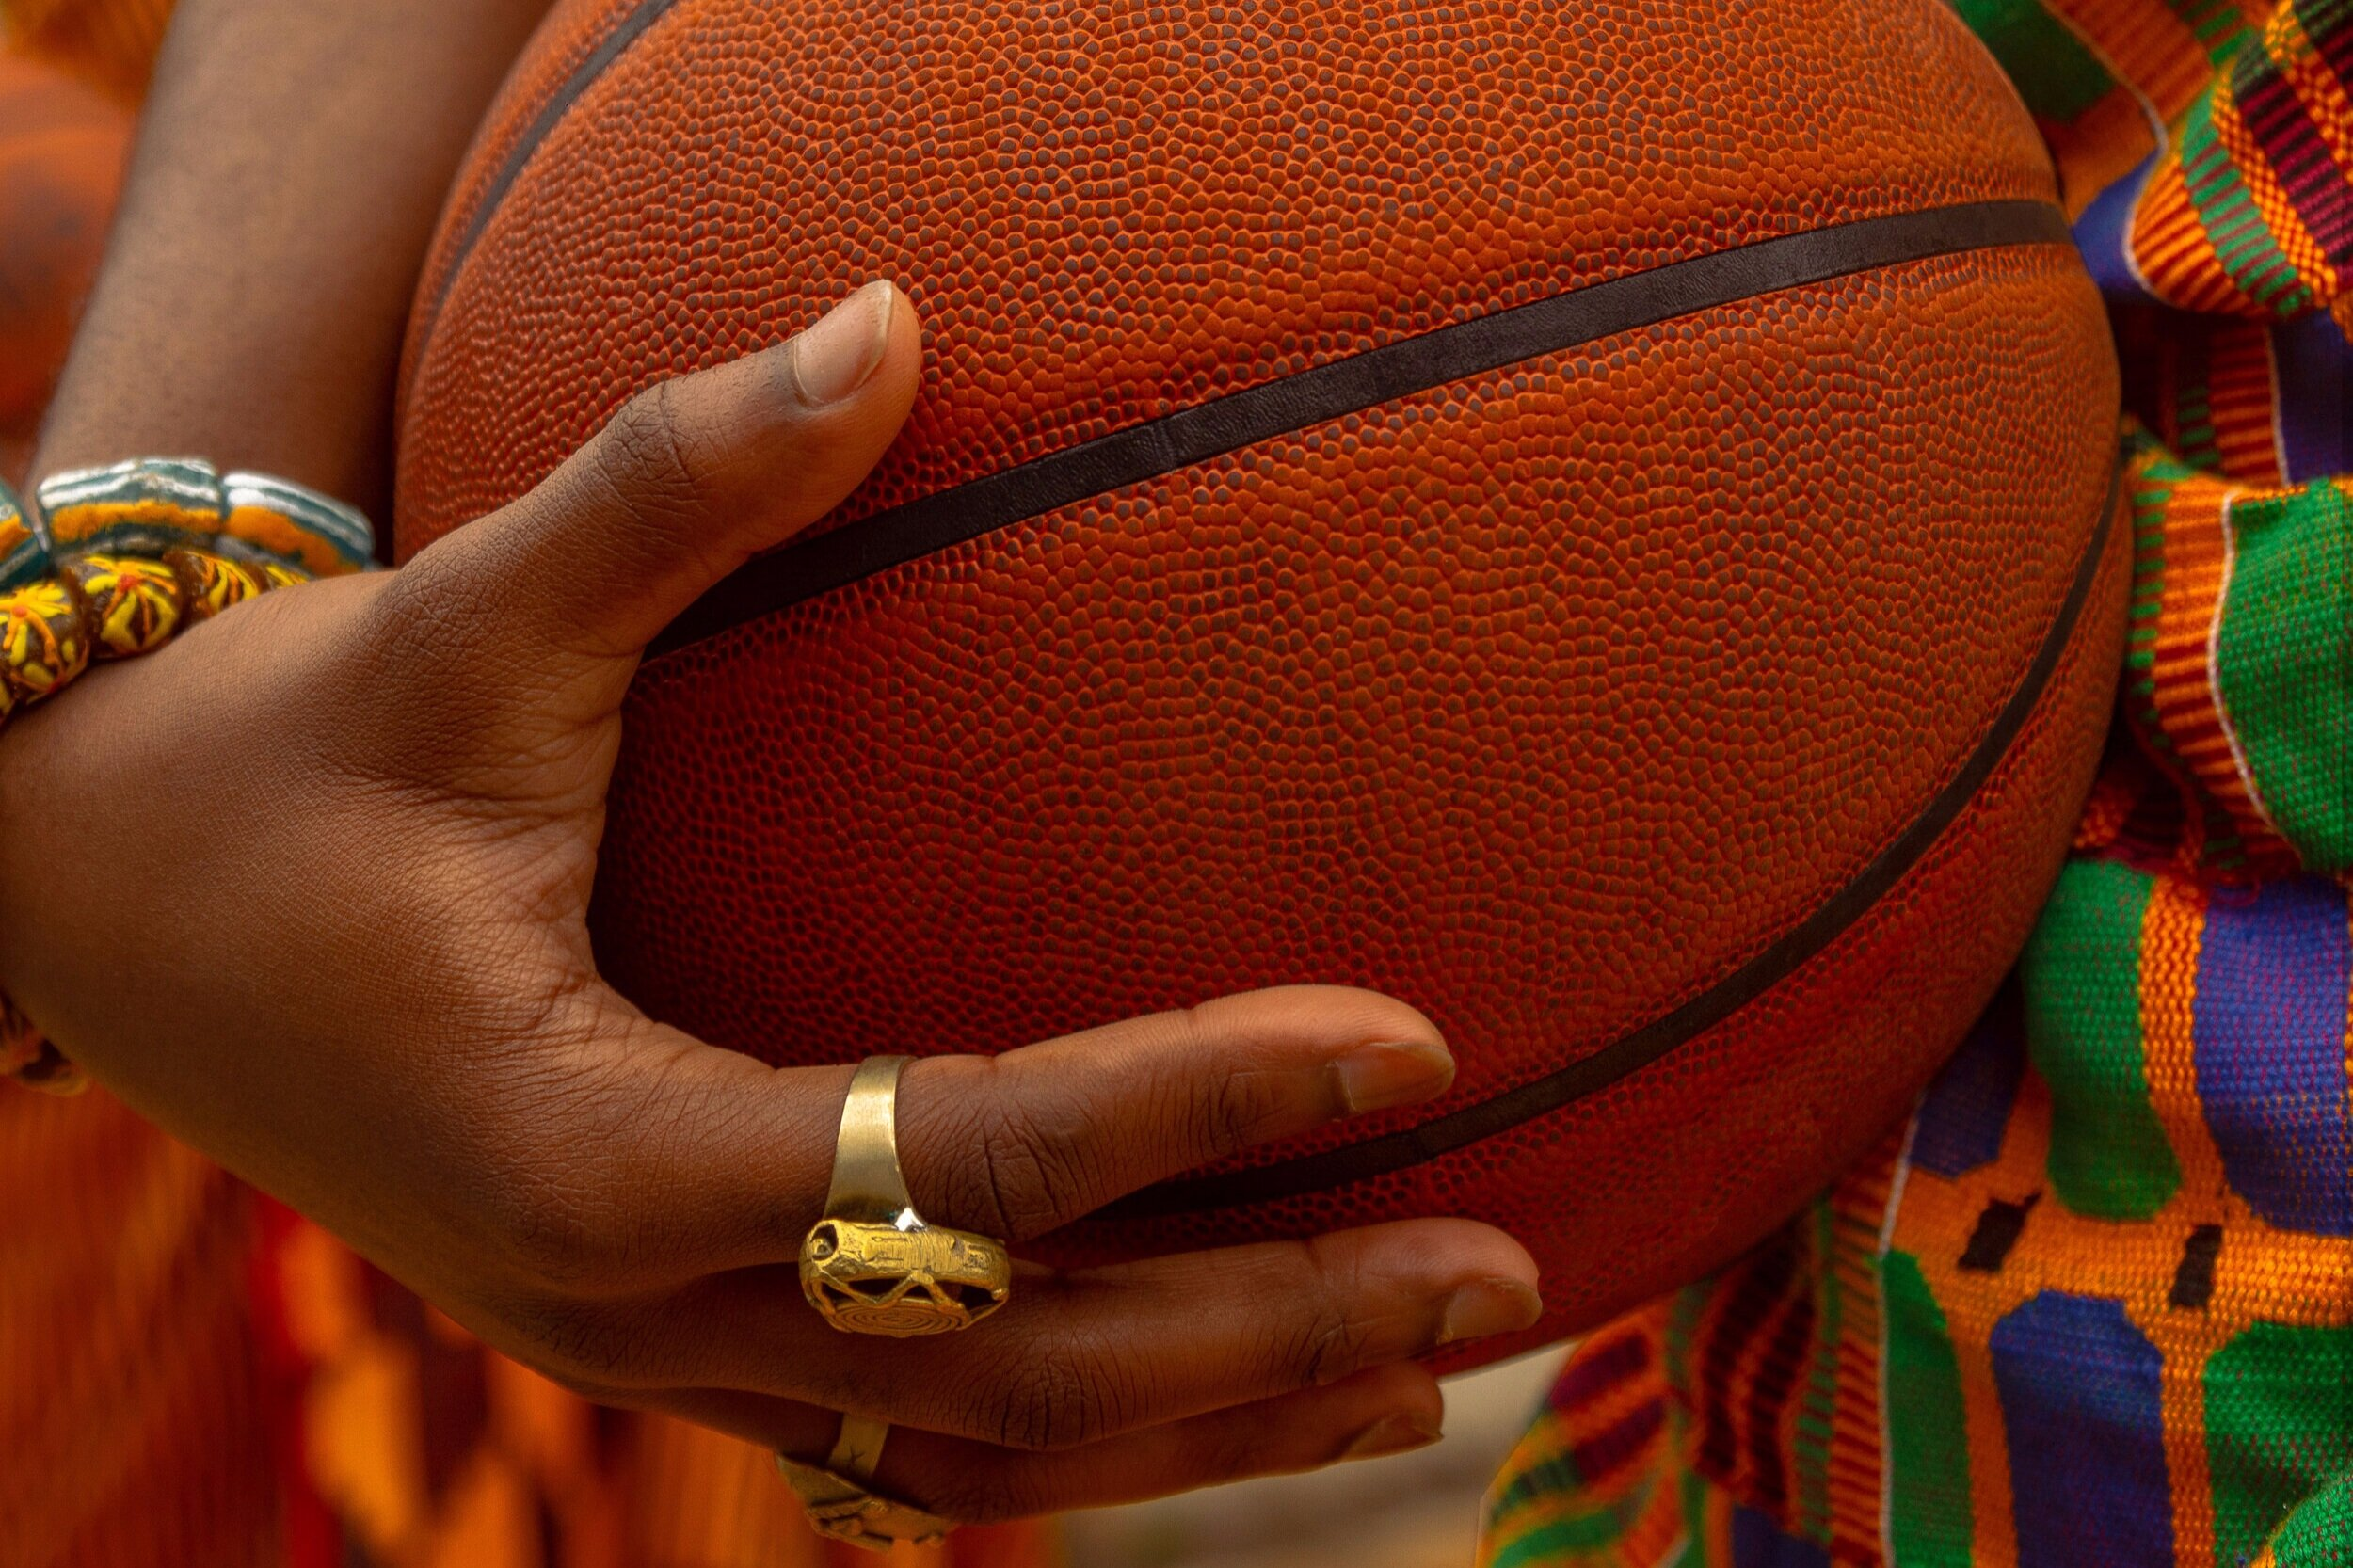 Vogue Italia: Jump Ball - Vogue Italia catches up with photographer, O'shane Howard, as he describes the creative approach Jump Ball aims to highlight.Written by Di Chiara Bardelli Nonino